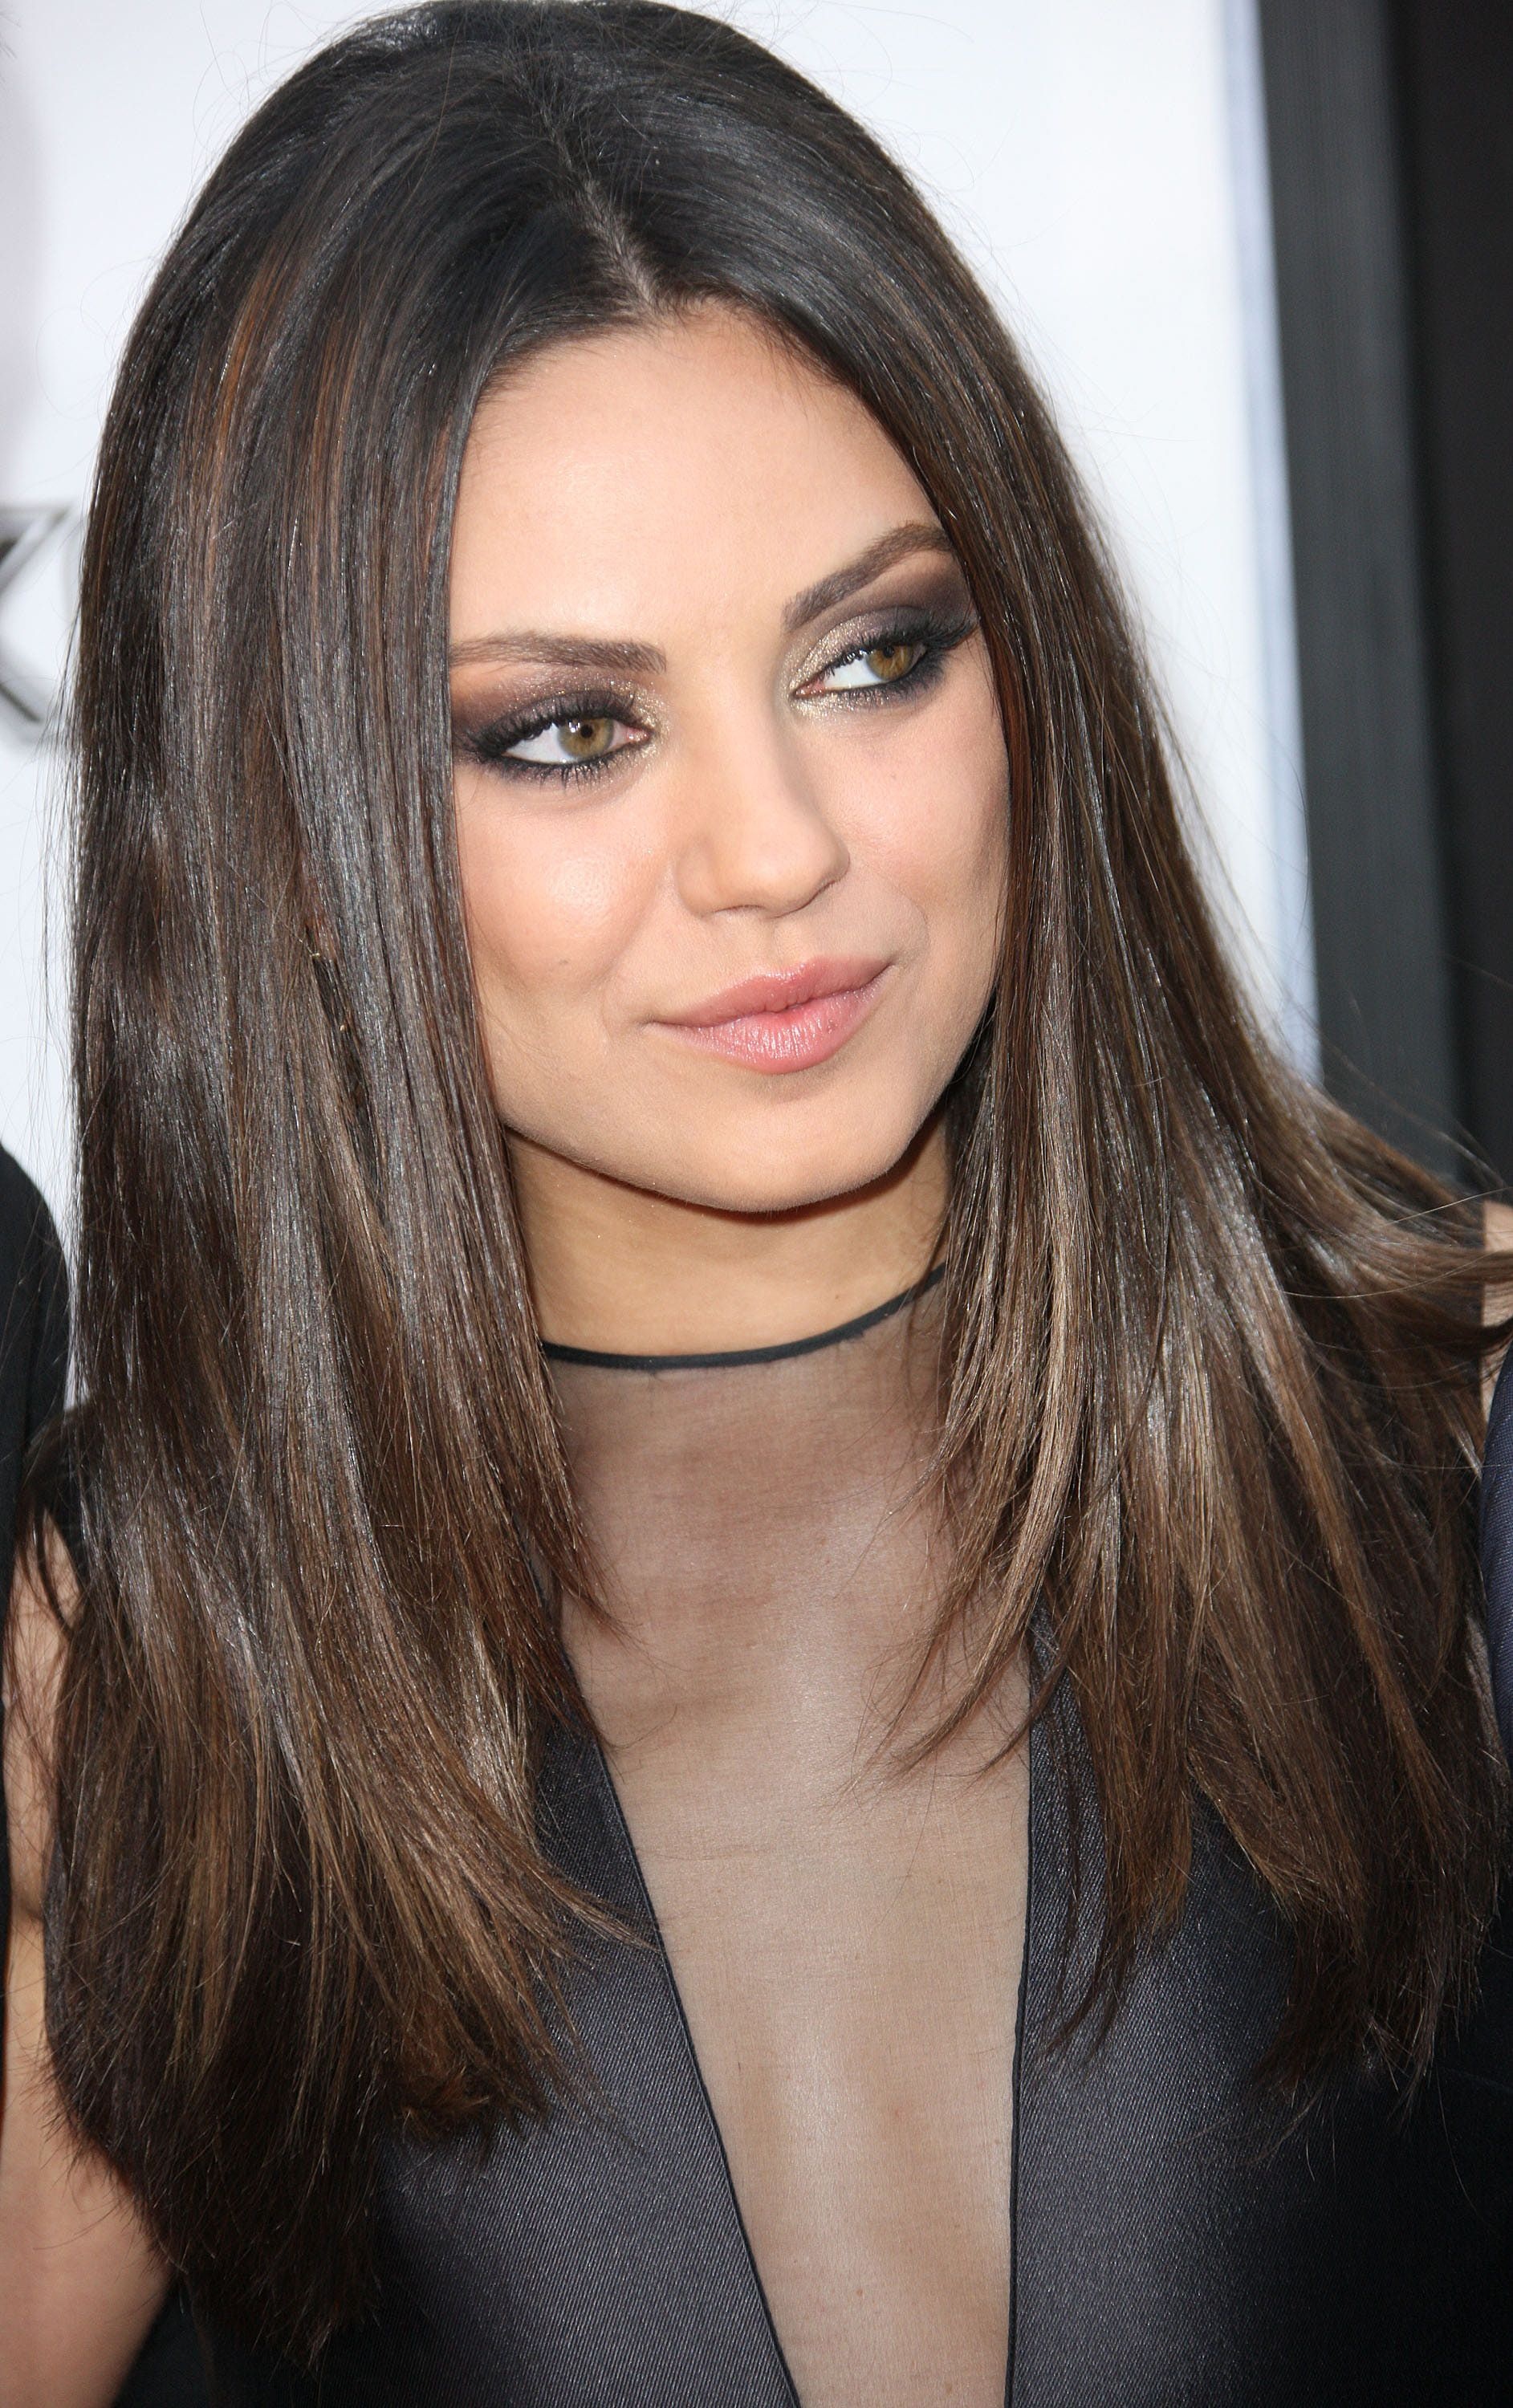 Hairstyle For Round Face With Long Hair Yoohair Straight Hair With Long Layered Jpg 1885 3000 Medium Hair Styles Hair Styles Oval Face Hairstyles